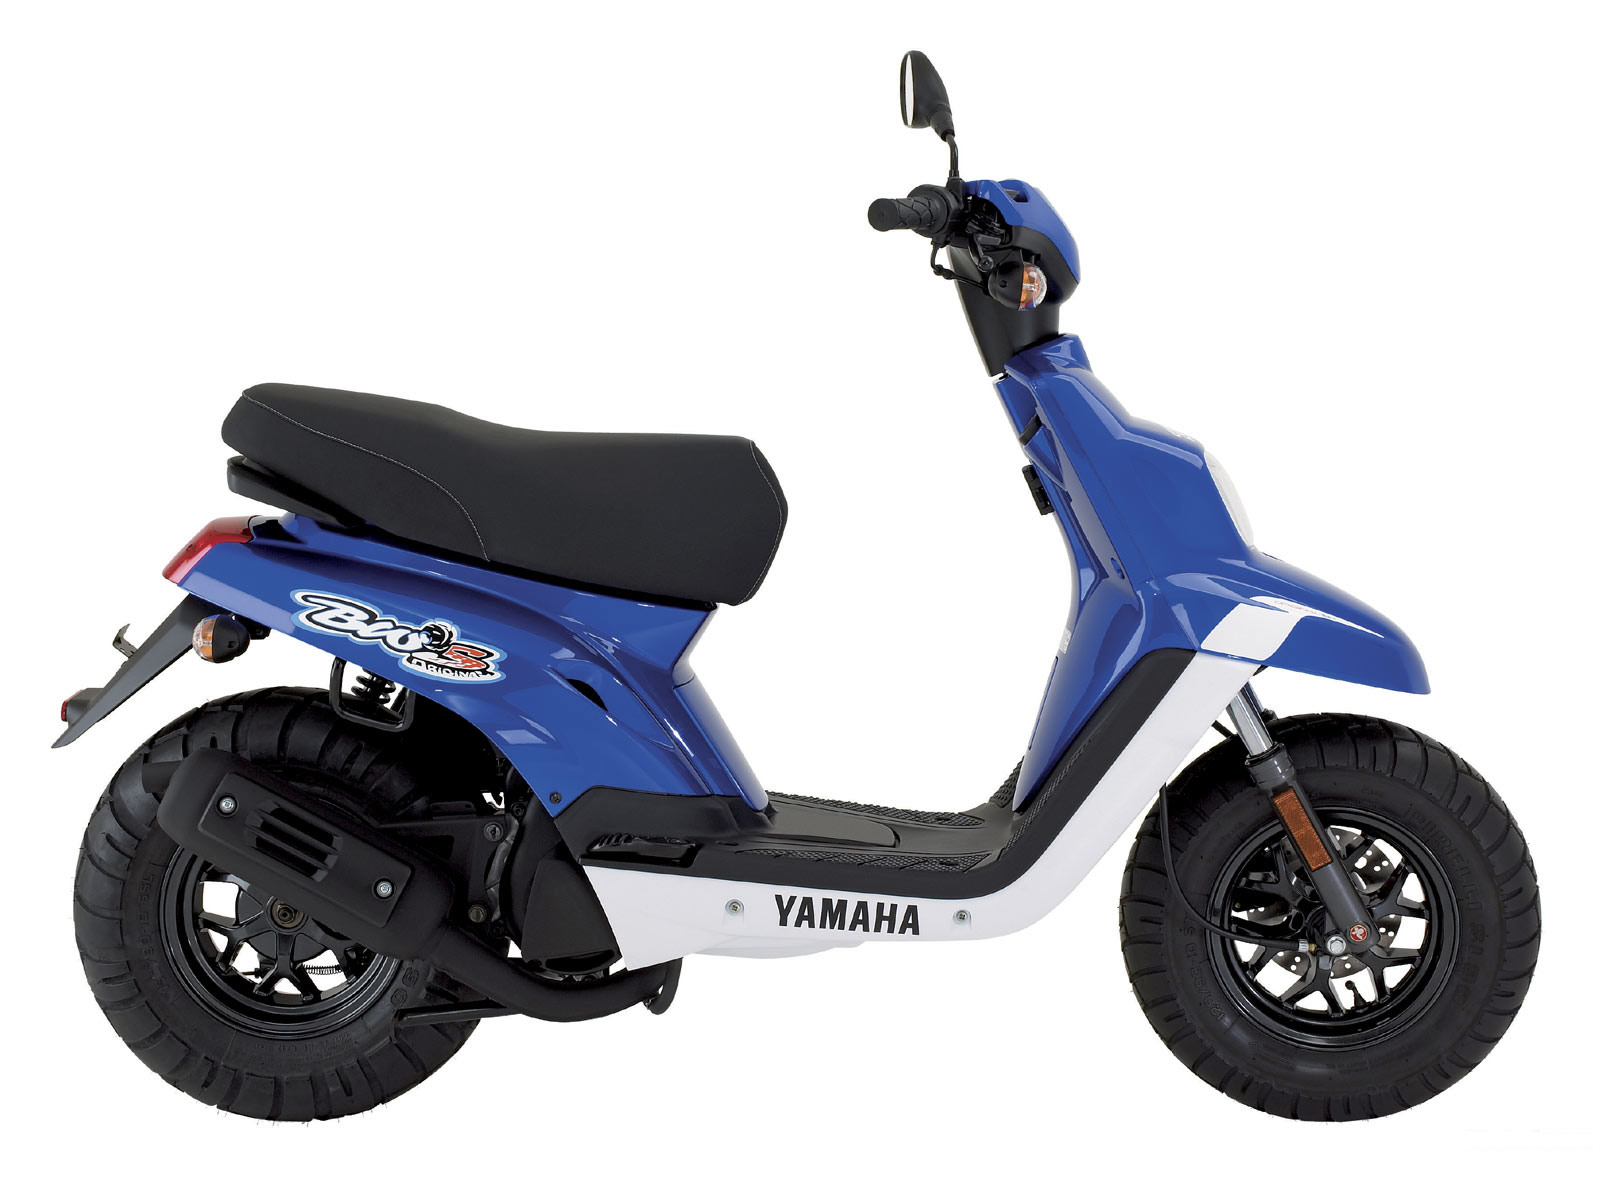 40 yamaha specifications autos post for Yamaha psr e453 specs